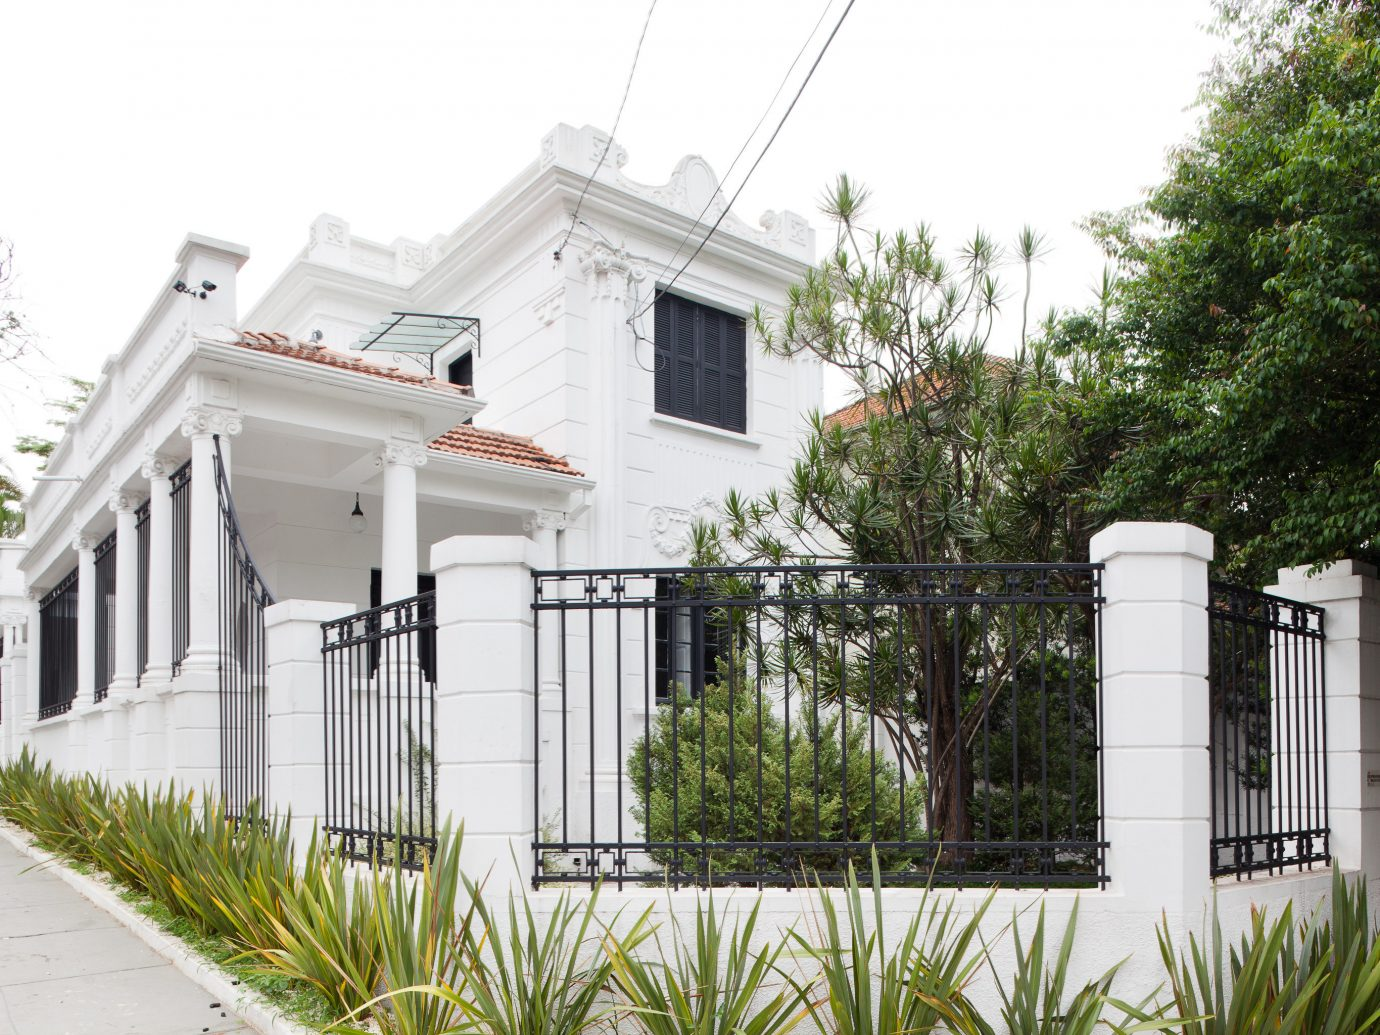 Hotels outdoor tree sky building house property home residential area estate neighbourhood Architecture facade siding Villa suburb cottage real estate mansion Fence outdoor structure